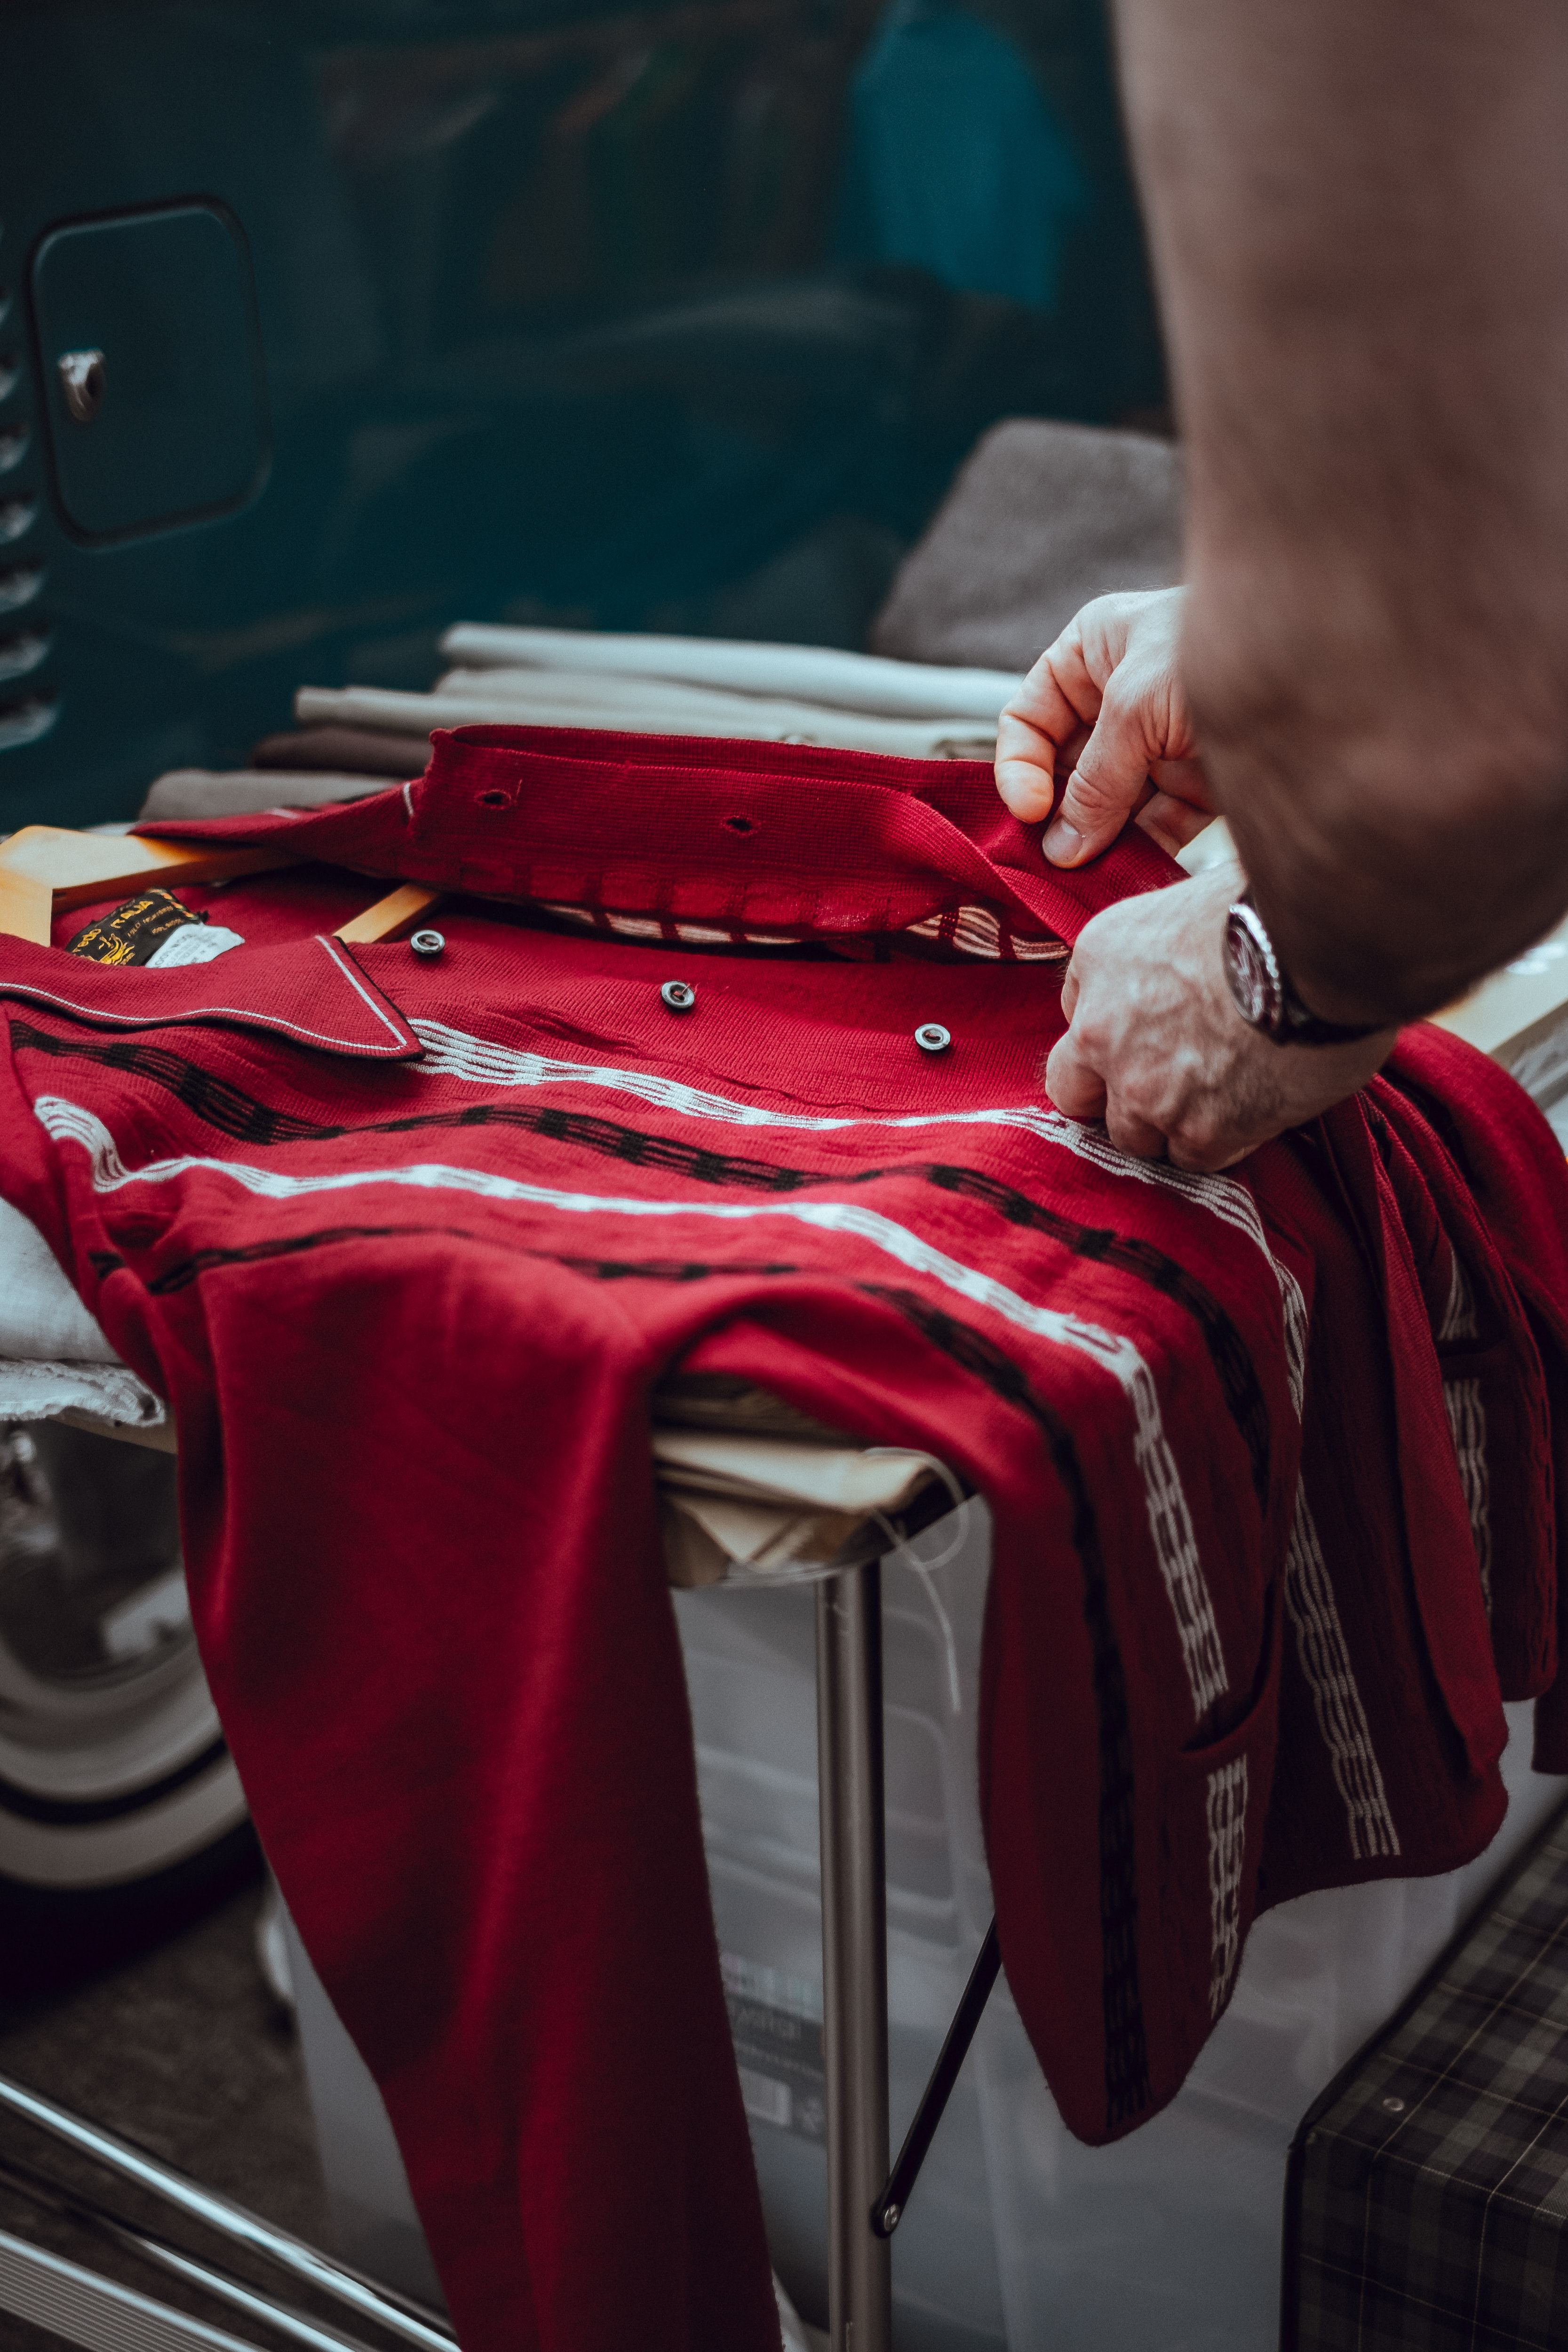 A person examines a red vintage garment on a table in Lewis Cubitt Square